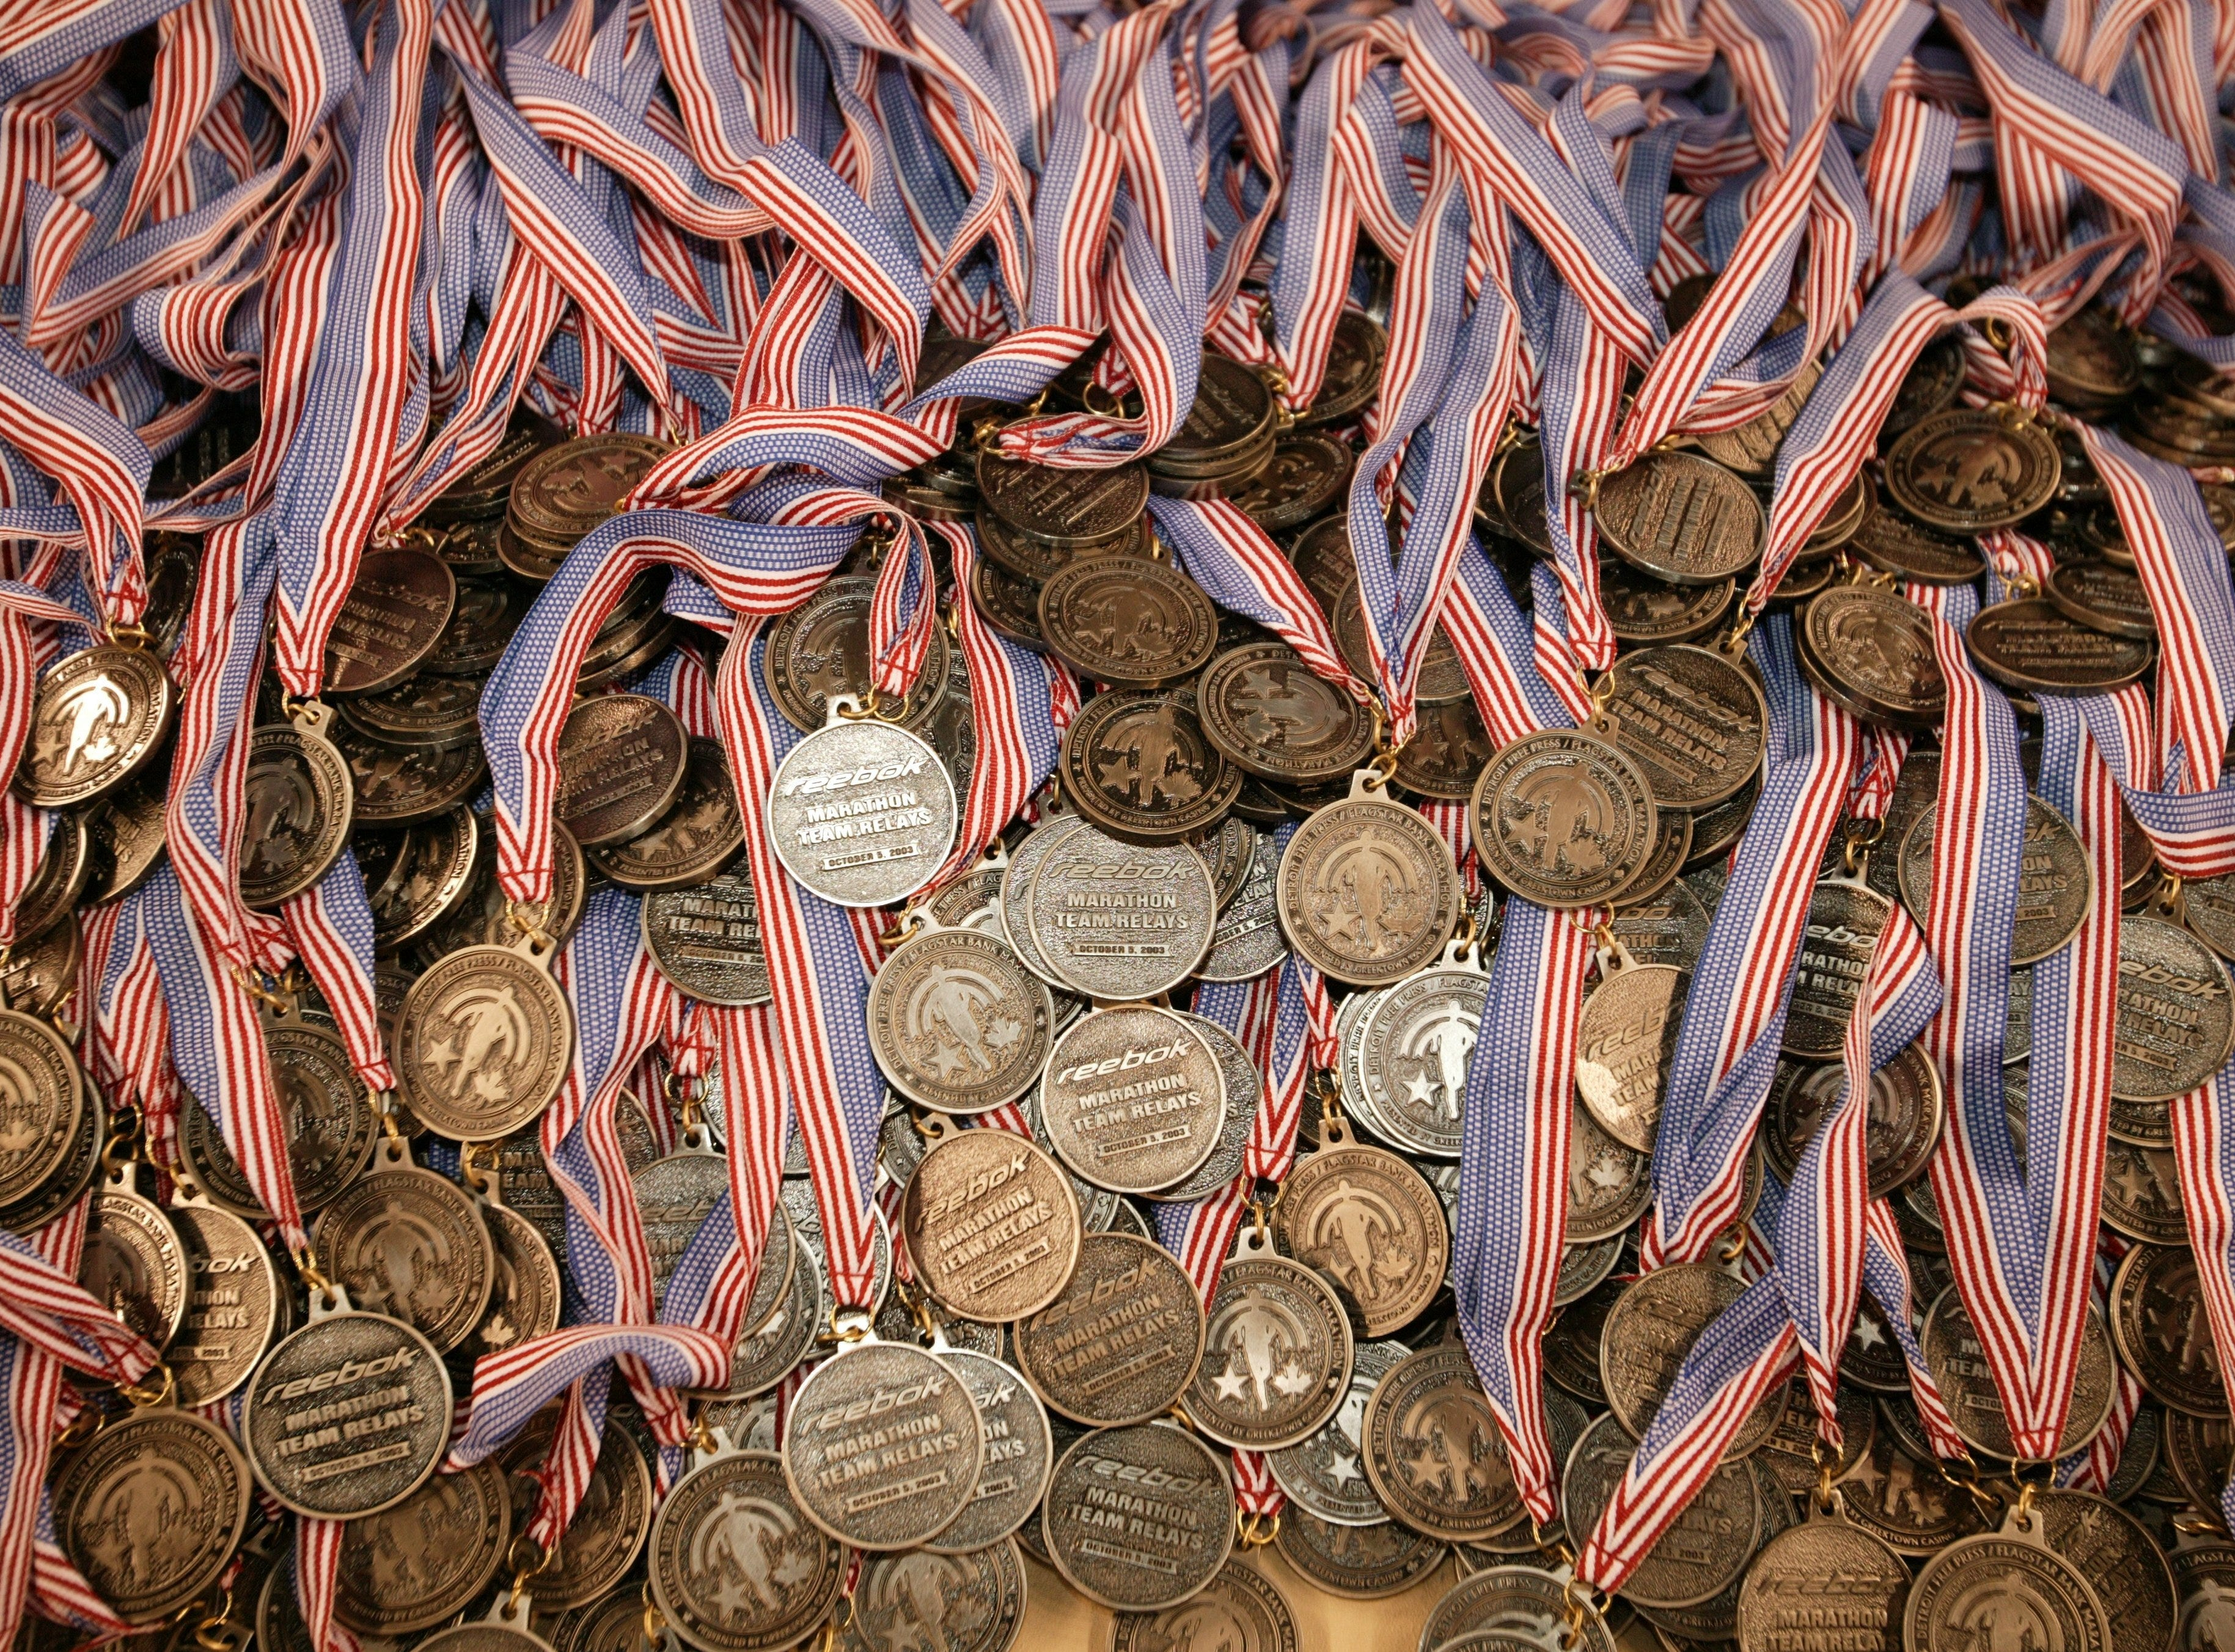 26th Annual Detroit Free Press/Flagstar Bank Marathon.Caption: Medals sit on a table inside Ford Field waiting for runners to finnish the 26th Annual Detroit Free Press / Flagstar Bank Marathon on Sunday October 5, 2003.